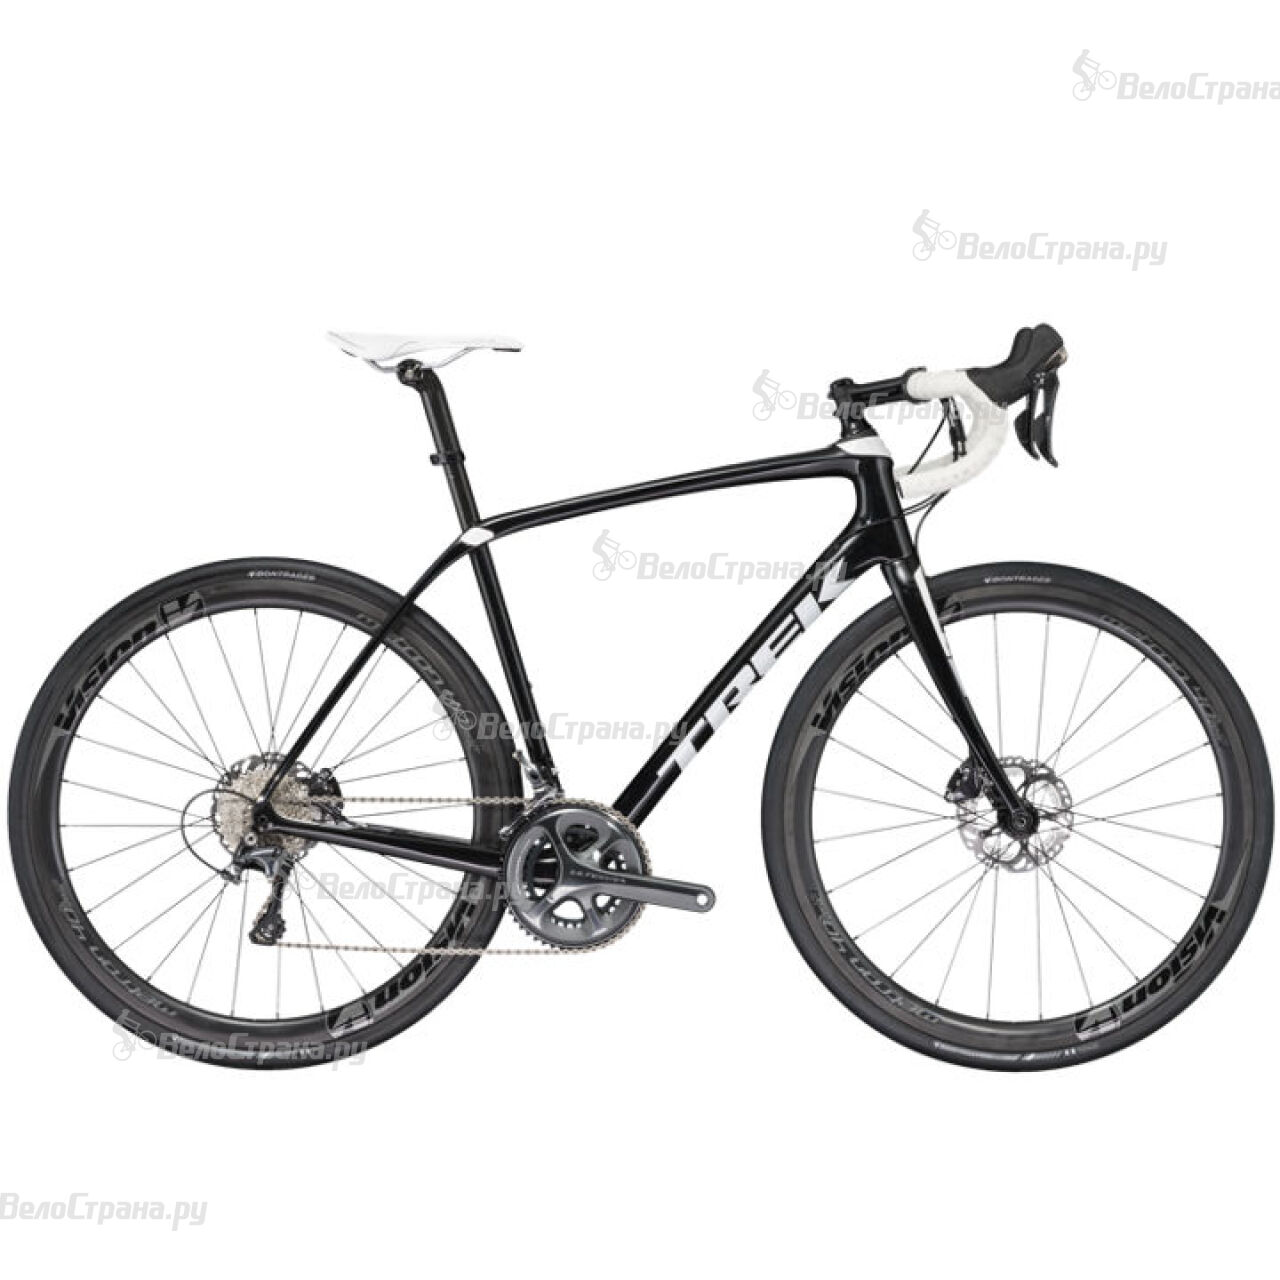 Велосипед Trek Domane SL 6 Disc (2017) велосипед trek domane alr 4 disc 2017